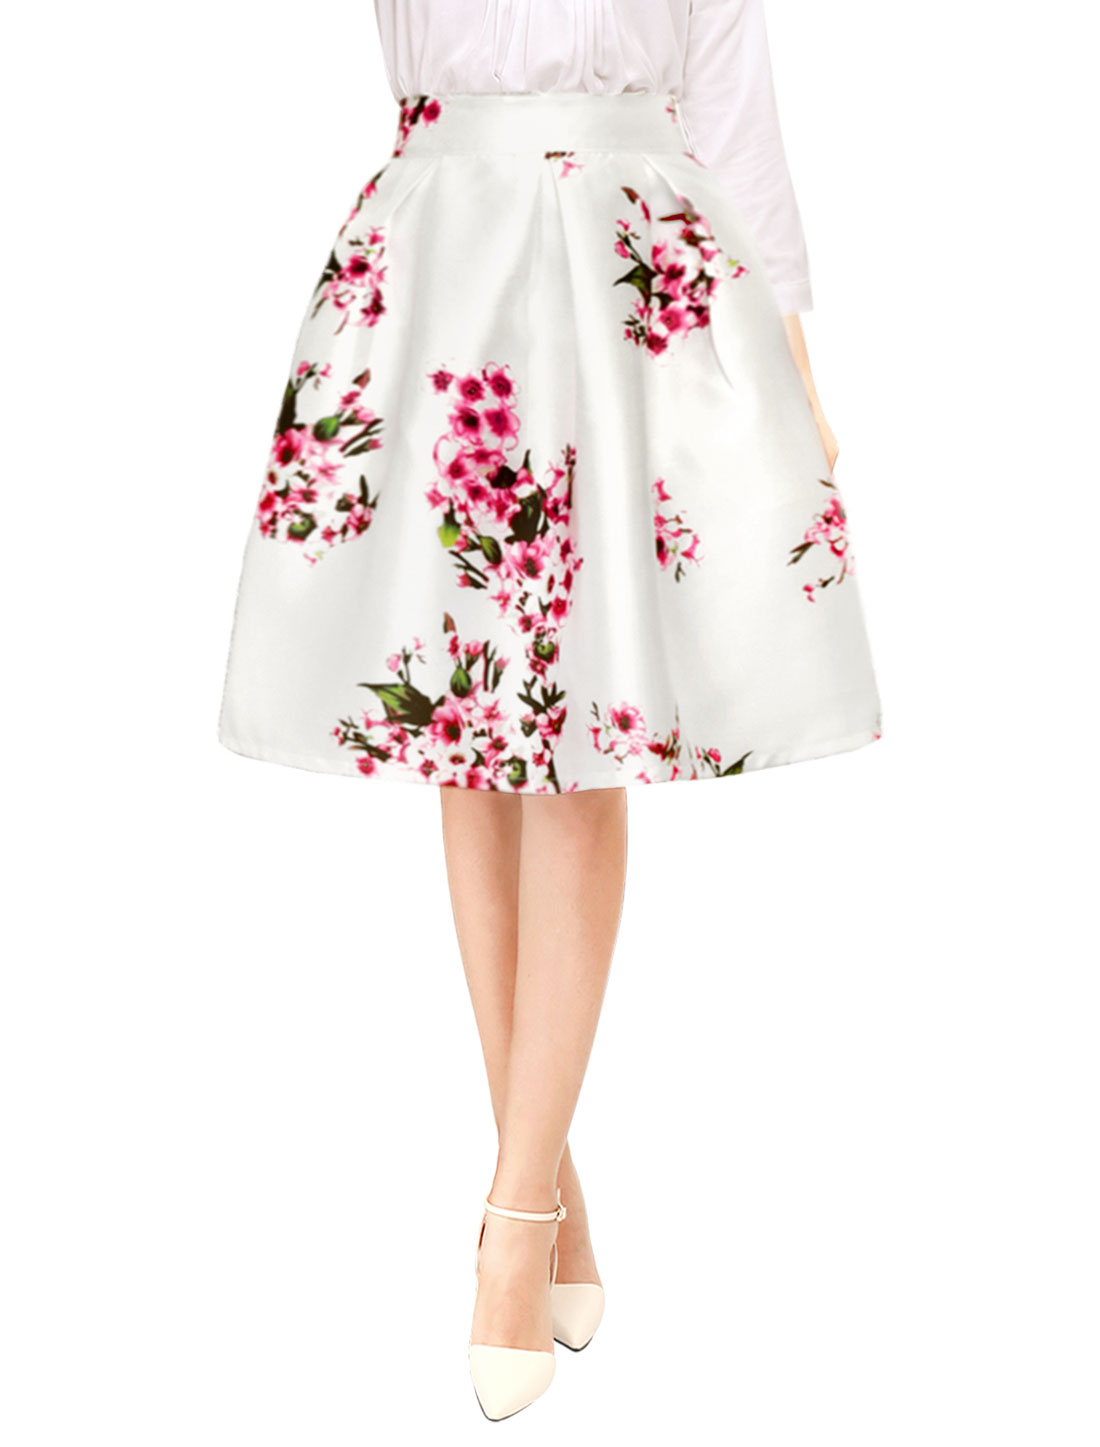 Allegra K Woman Floral Prints Concealed Zipper Pleated Midi Skirt White XS